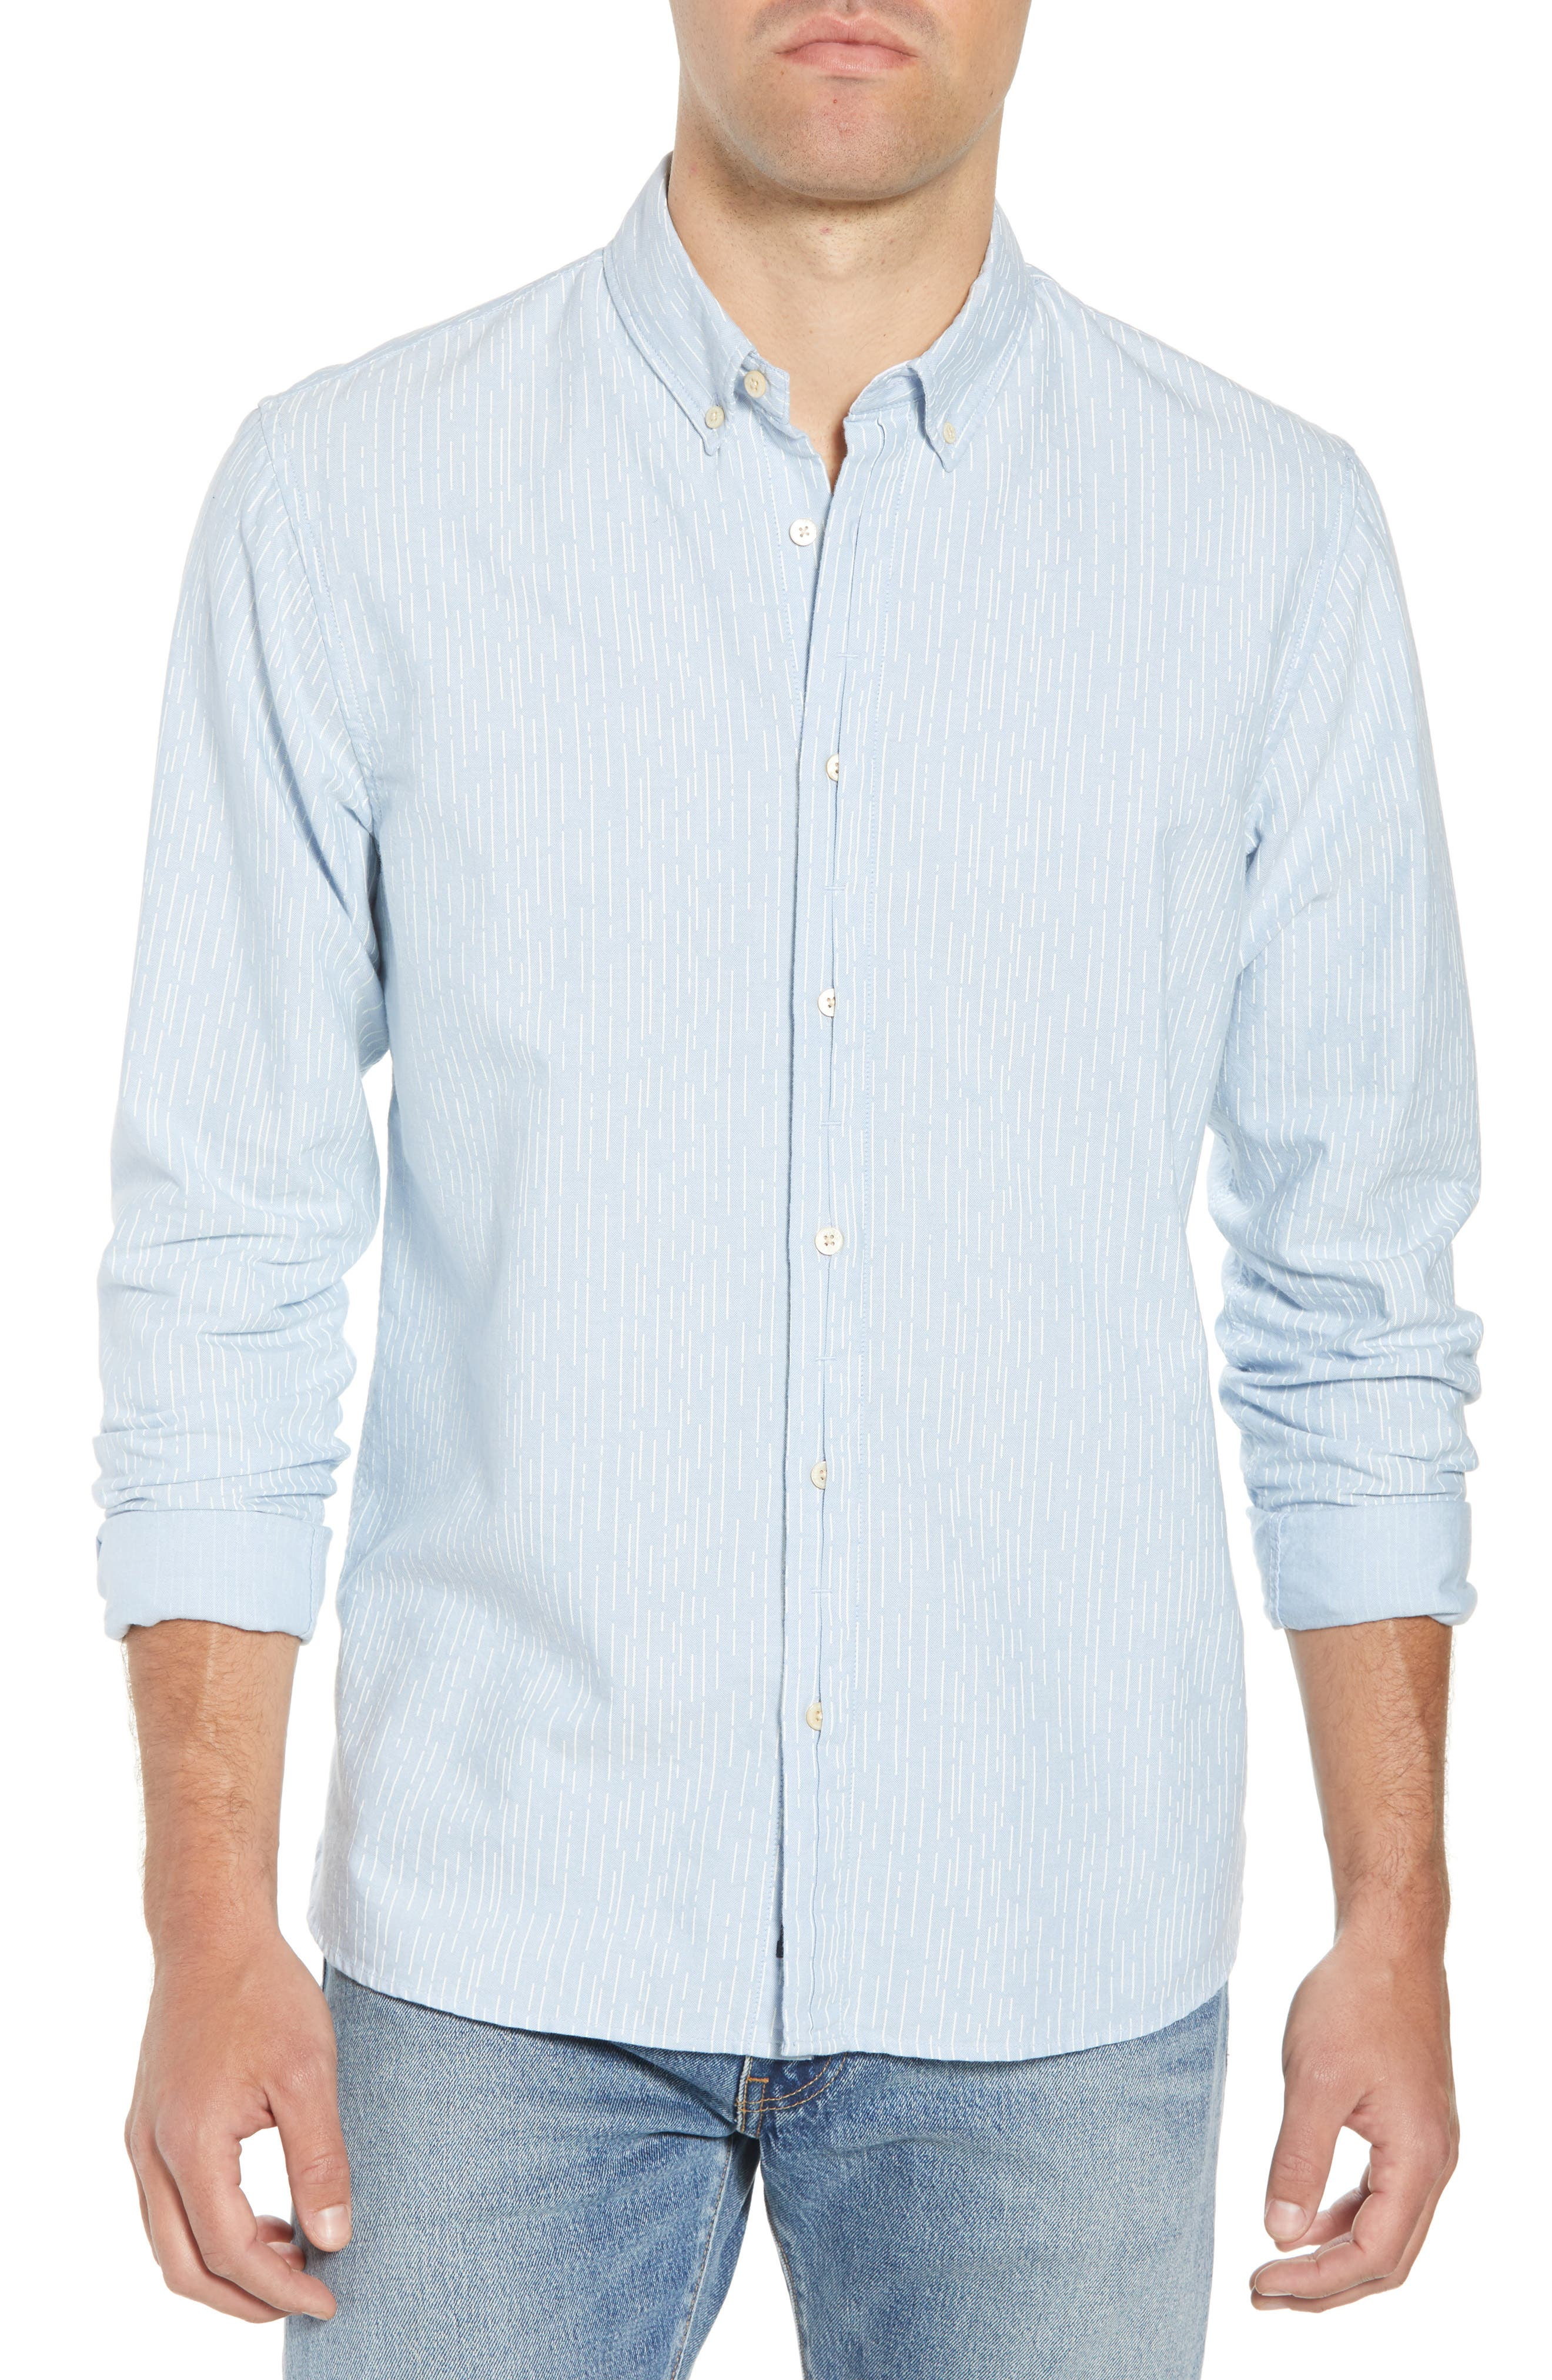 Amsterdams Blauw Striped Sport Shirt,                         Main,                         color, 420